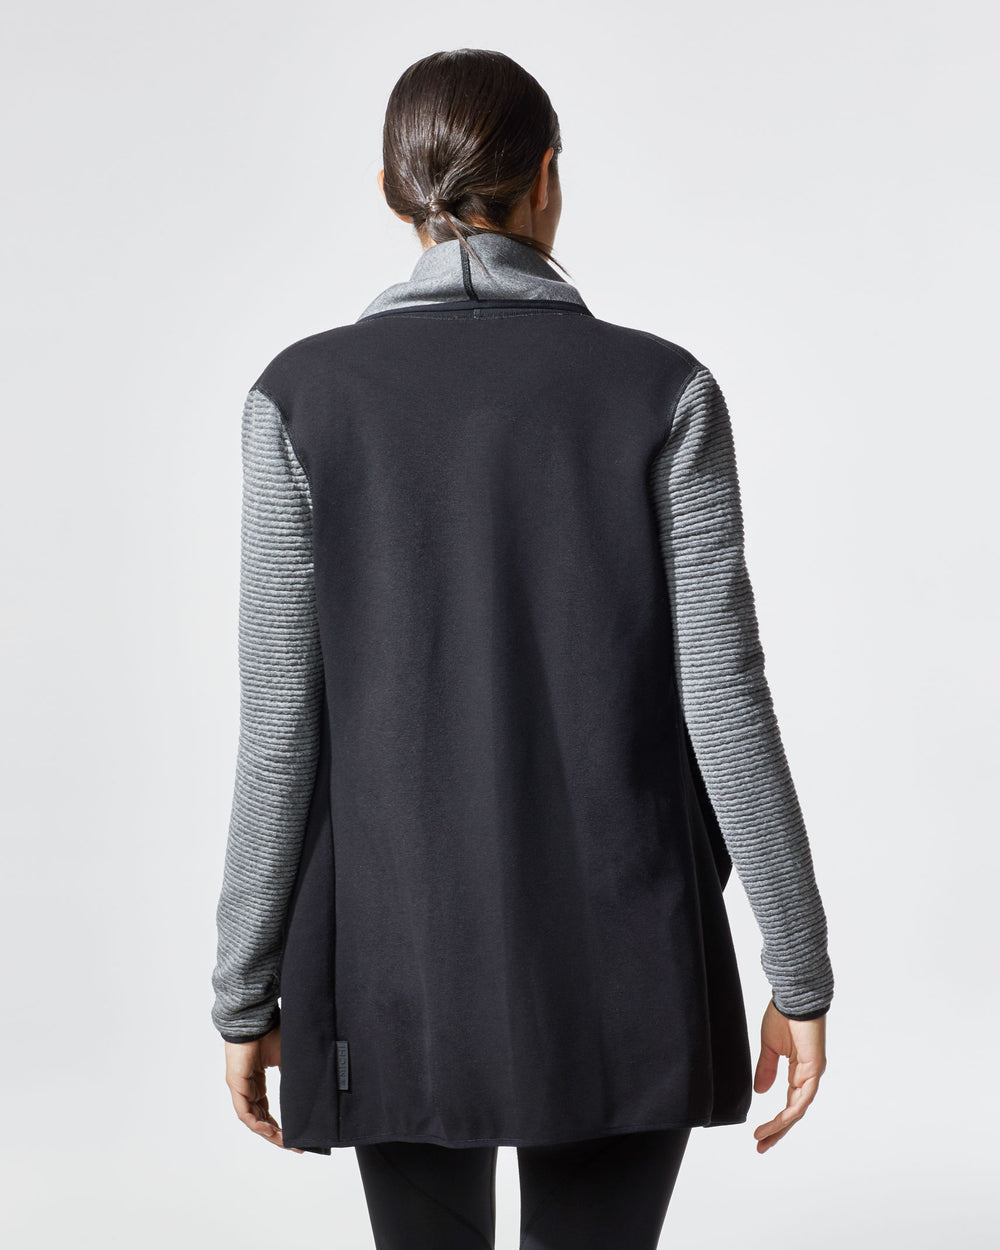 Dusk Wrap Jacket - Black